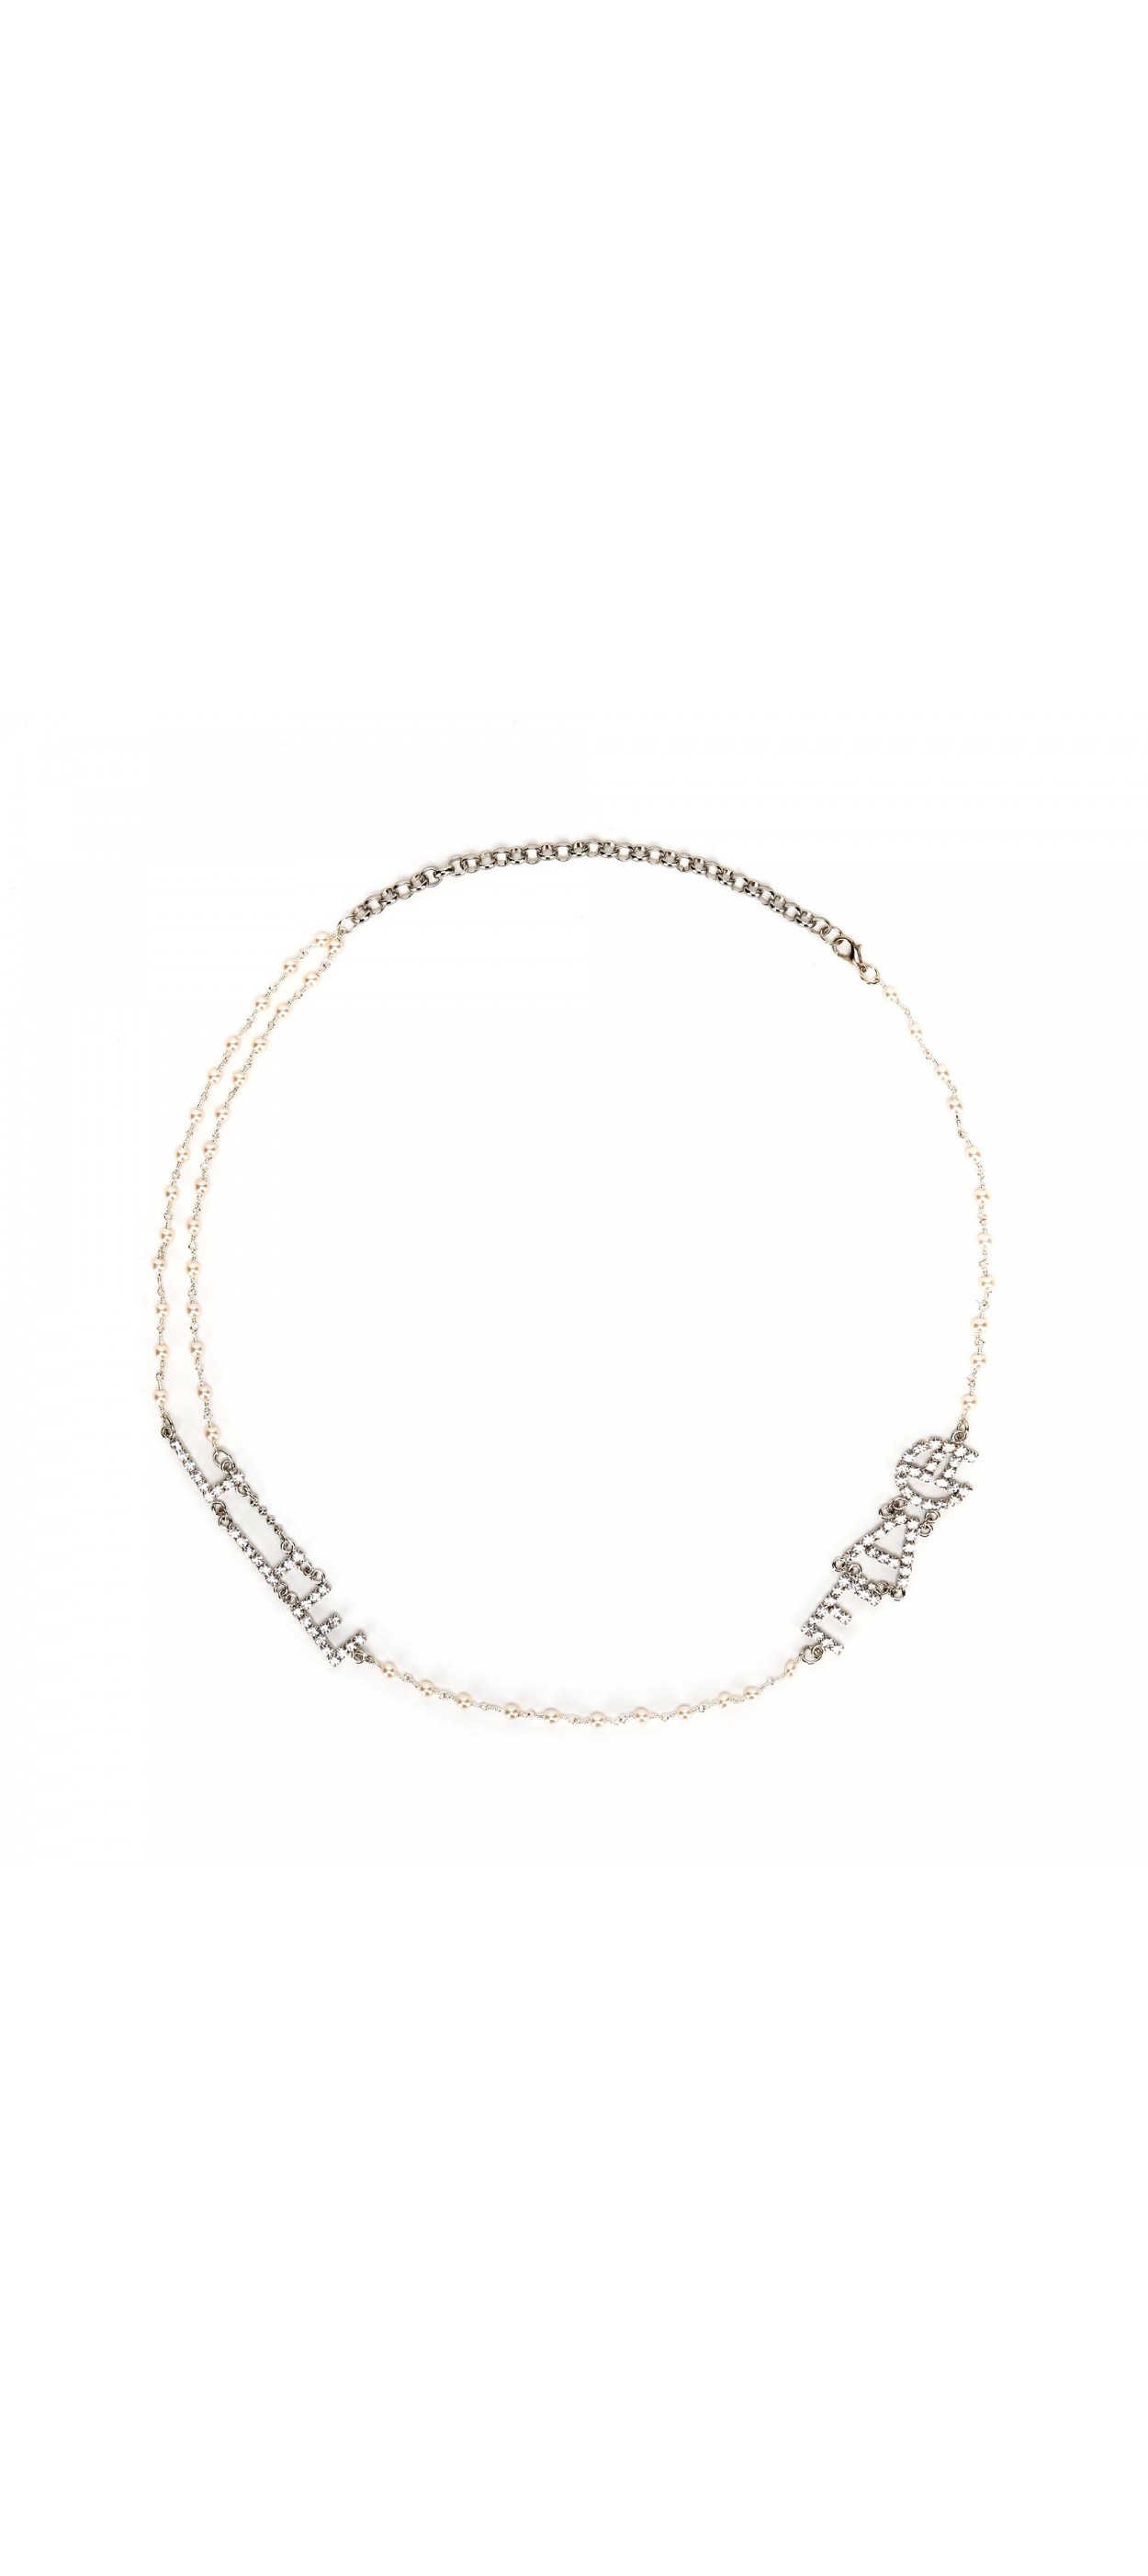 NECKLACE - GBDA2117 - GAELLE PARIS